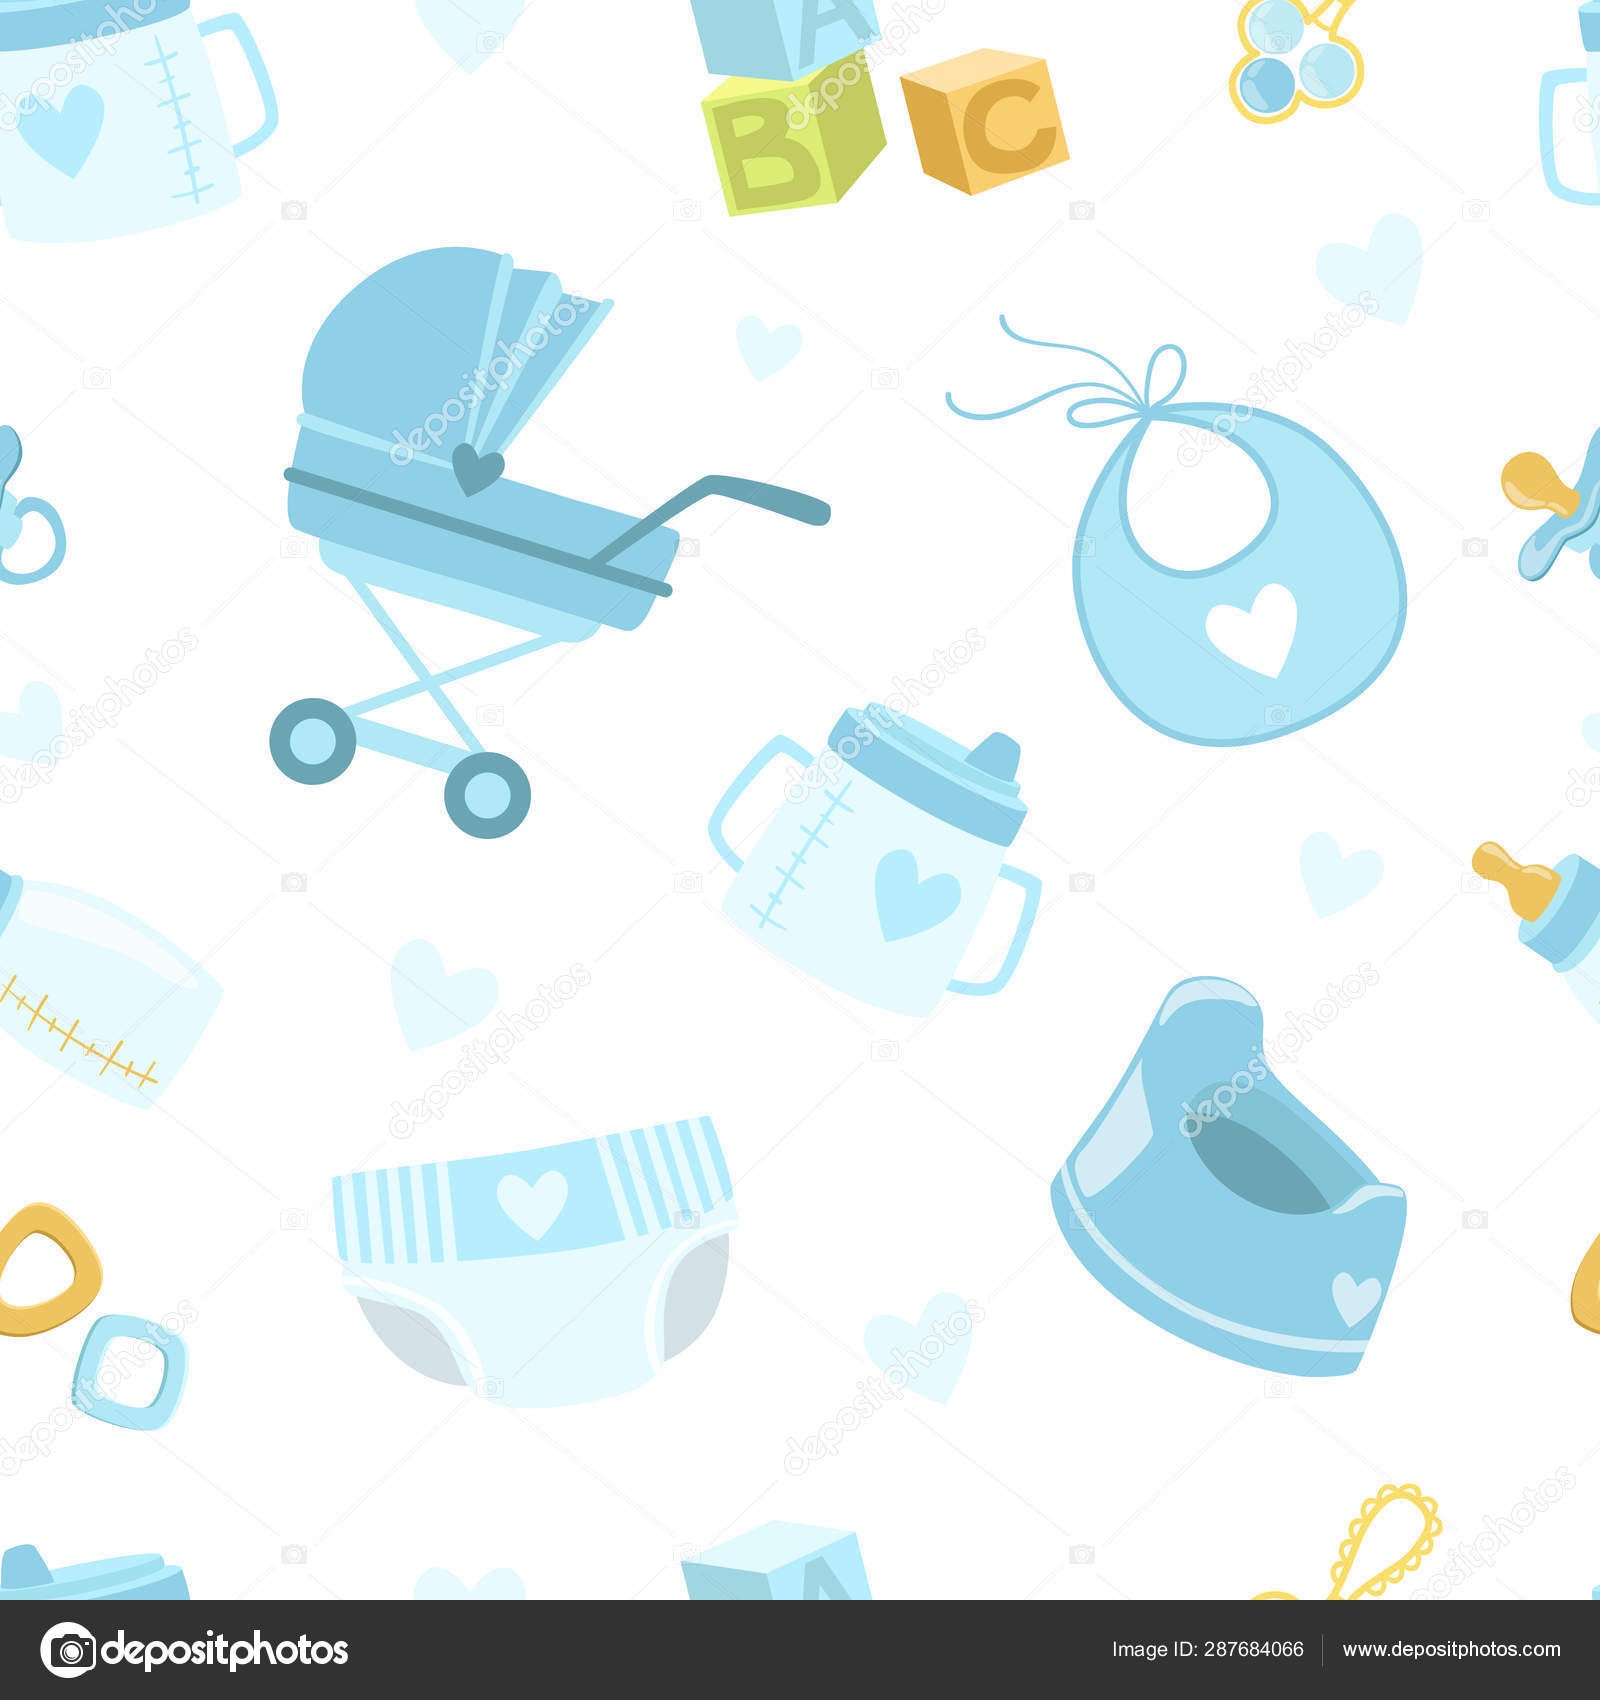 Baby Boy Shower Seamless Pattern Newborn Baby Symbols Design Element Can Be Used For Wallpaper Packaging Background Vector Illustration Stock Vector C Topvectors 287684066